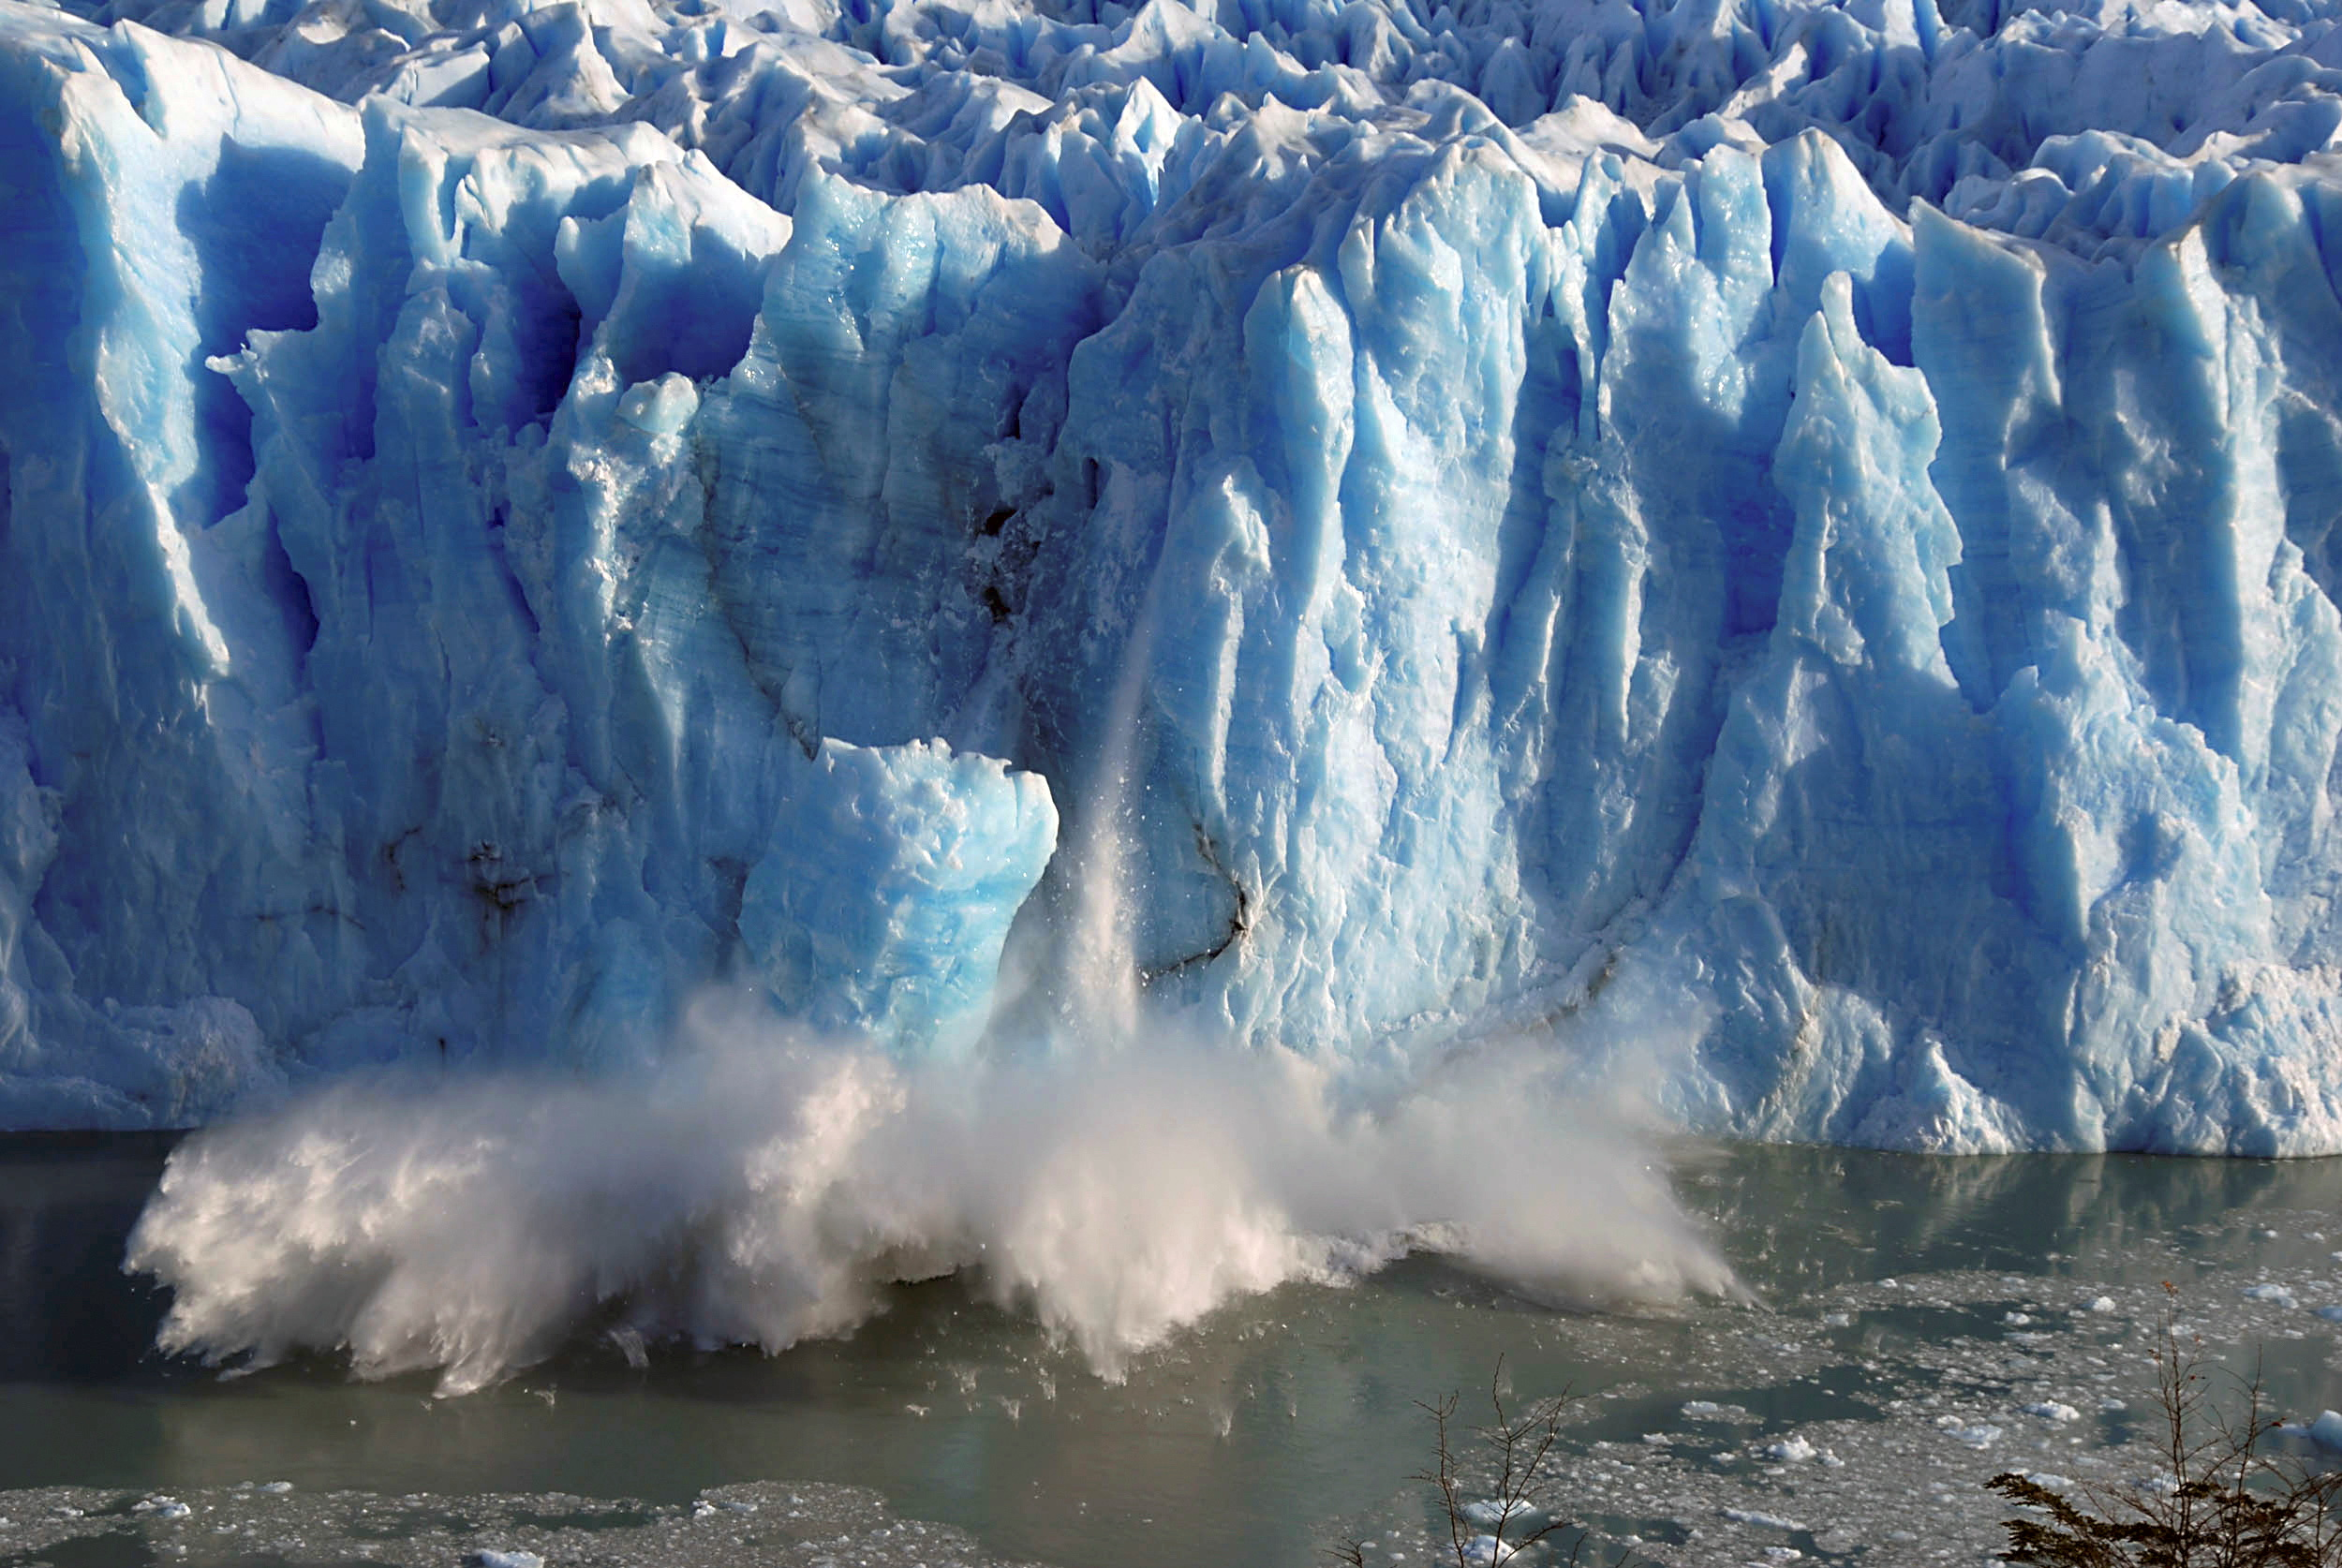 Splinters of ice peel off from one of the sides of the Perito Moreno glacier near the city of El Calafate in the Patagonian province of Santa Cruz, southern Argentina, in this July 7, 2008 file photo. REUTERS/Andres Forza/File Photo